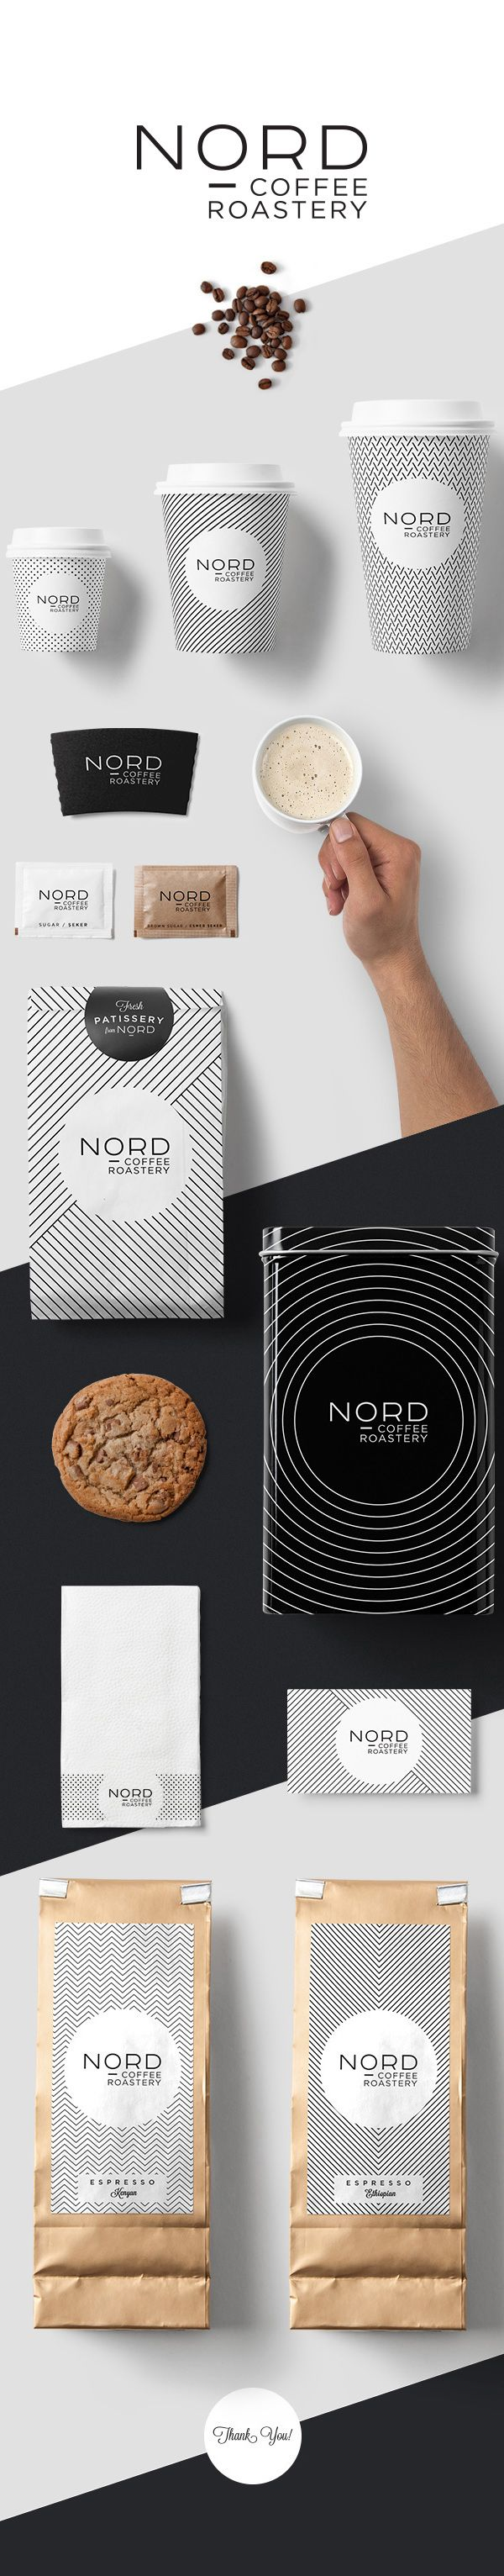 NORD Coffee Roastery packaging on Behance by Kutan Ural curated by Packaging Diva PD. Got time for a cup of coffee?